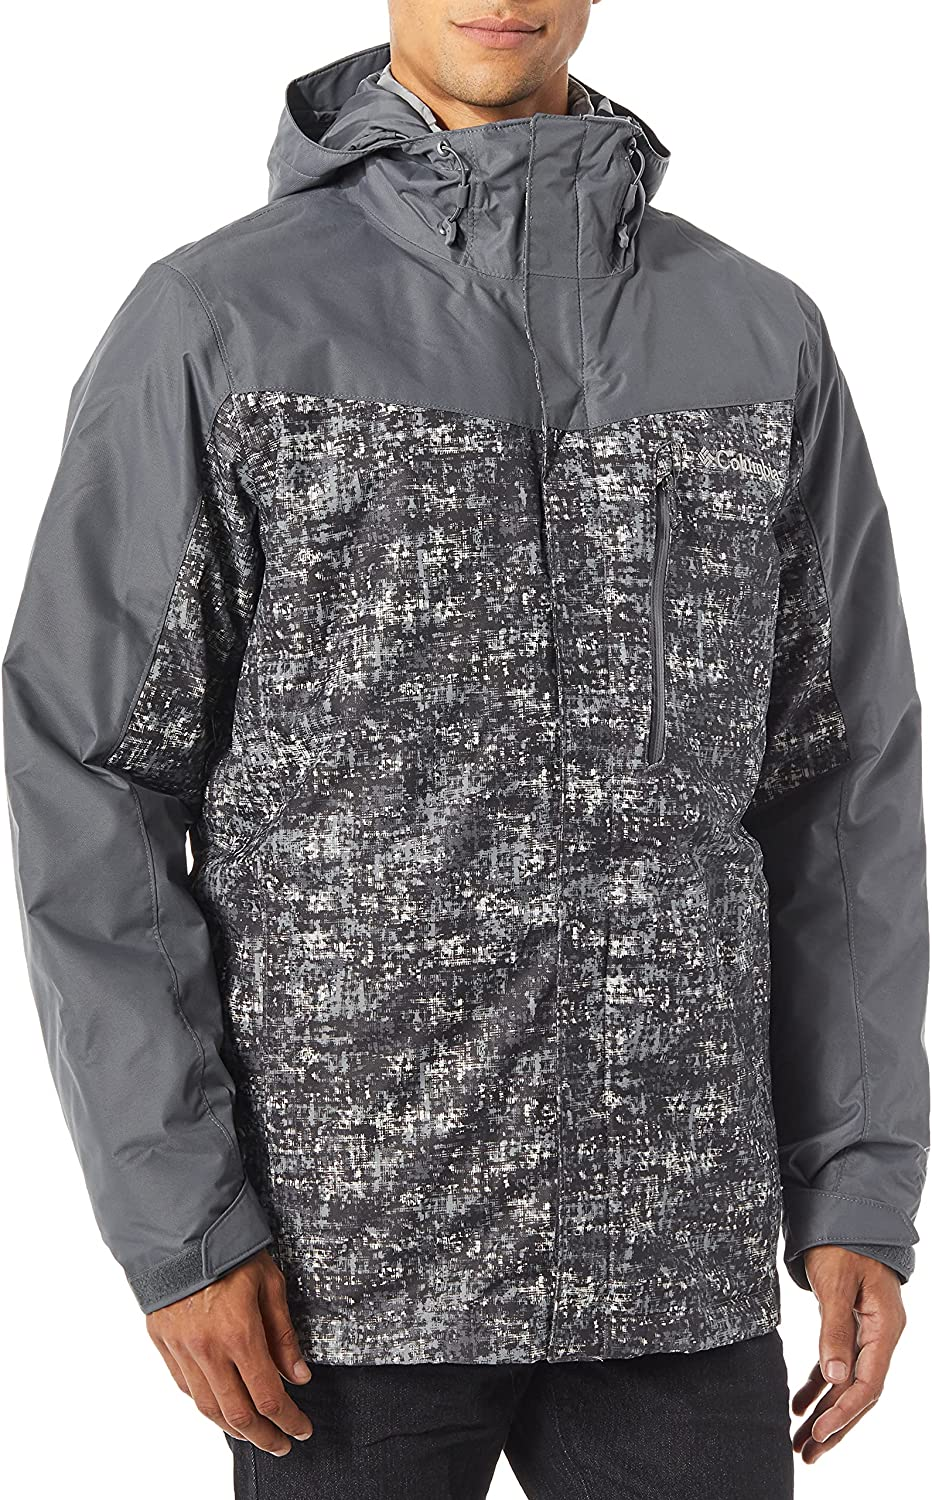 Columbia Men's Standard cheap Whirlibird III Graph Free shipping anywhere in the nation Interchange Jacket